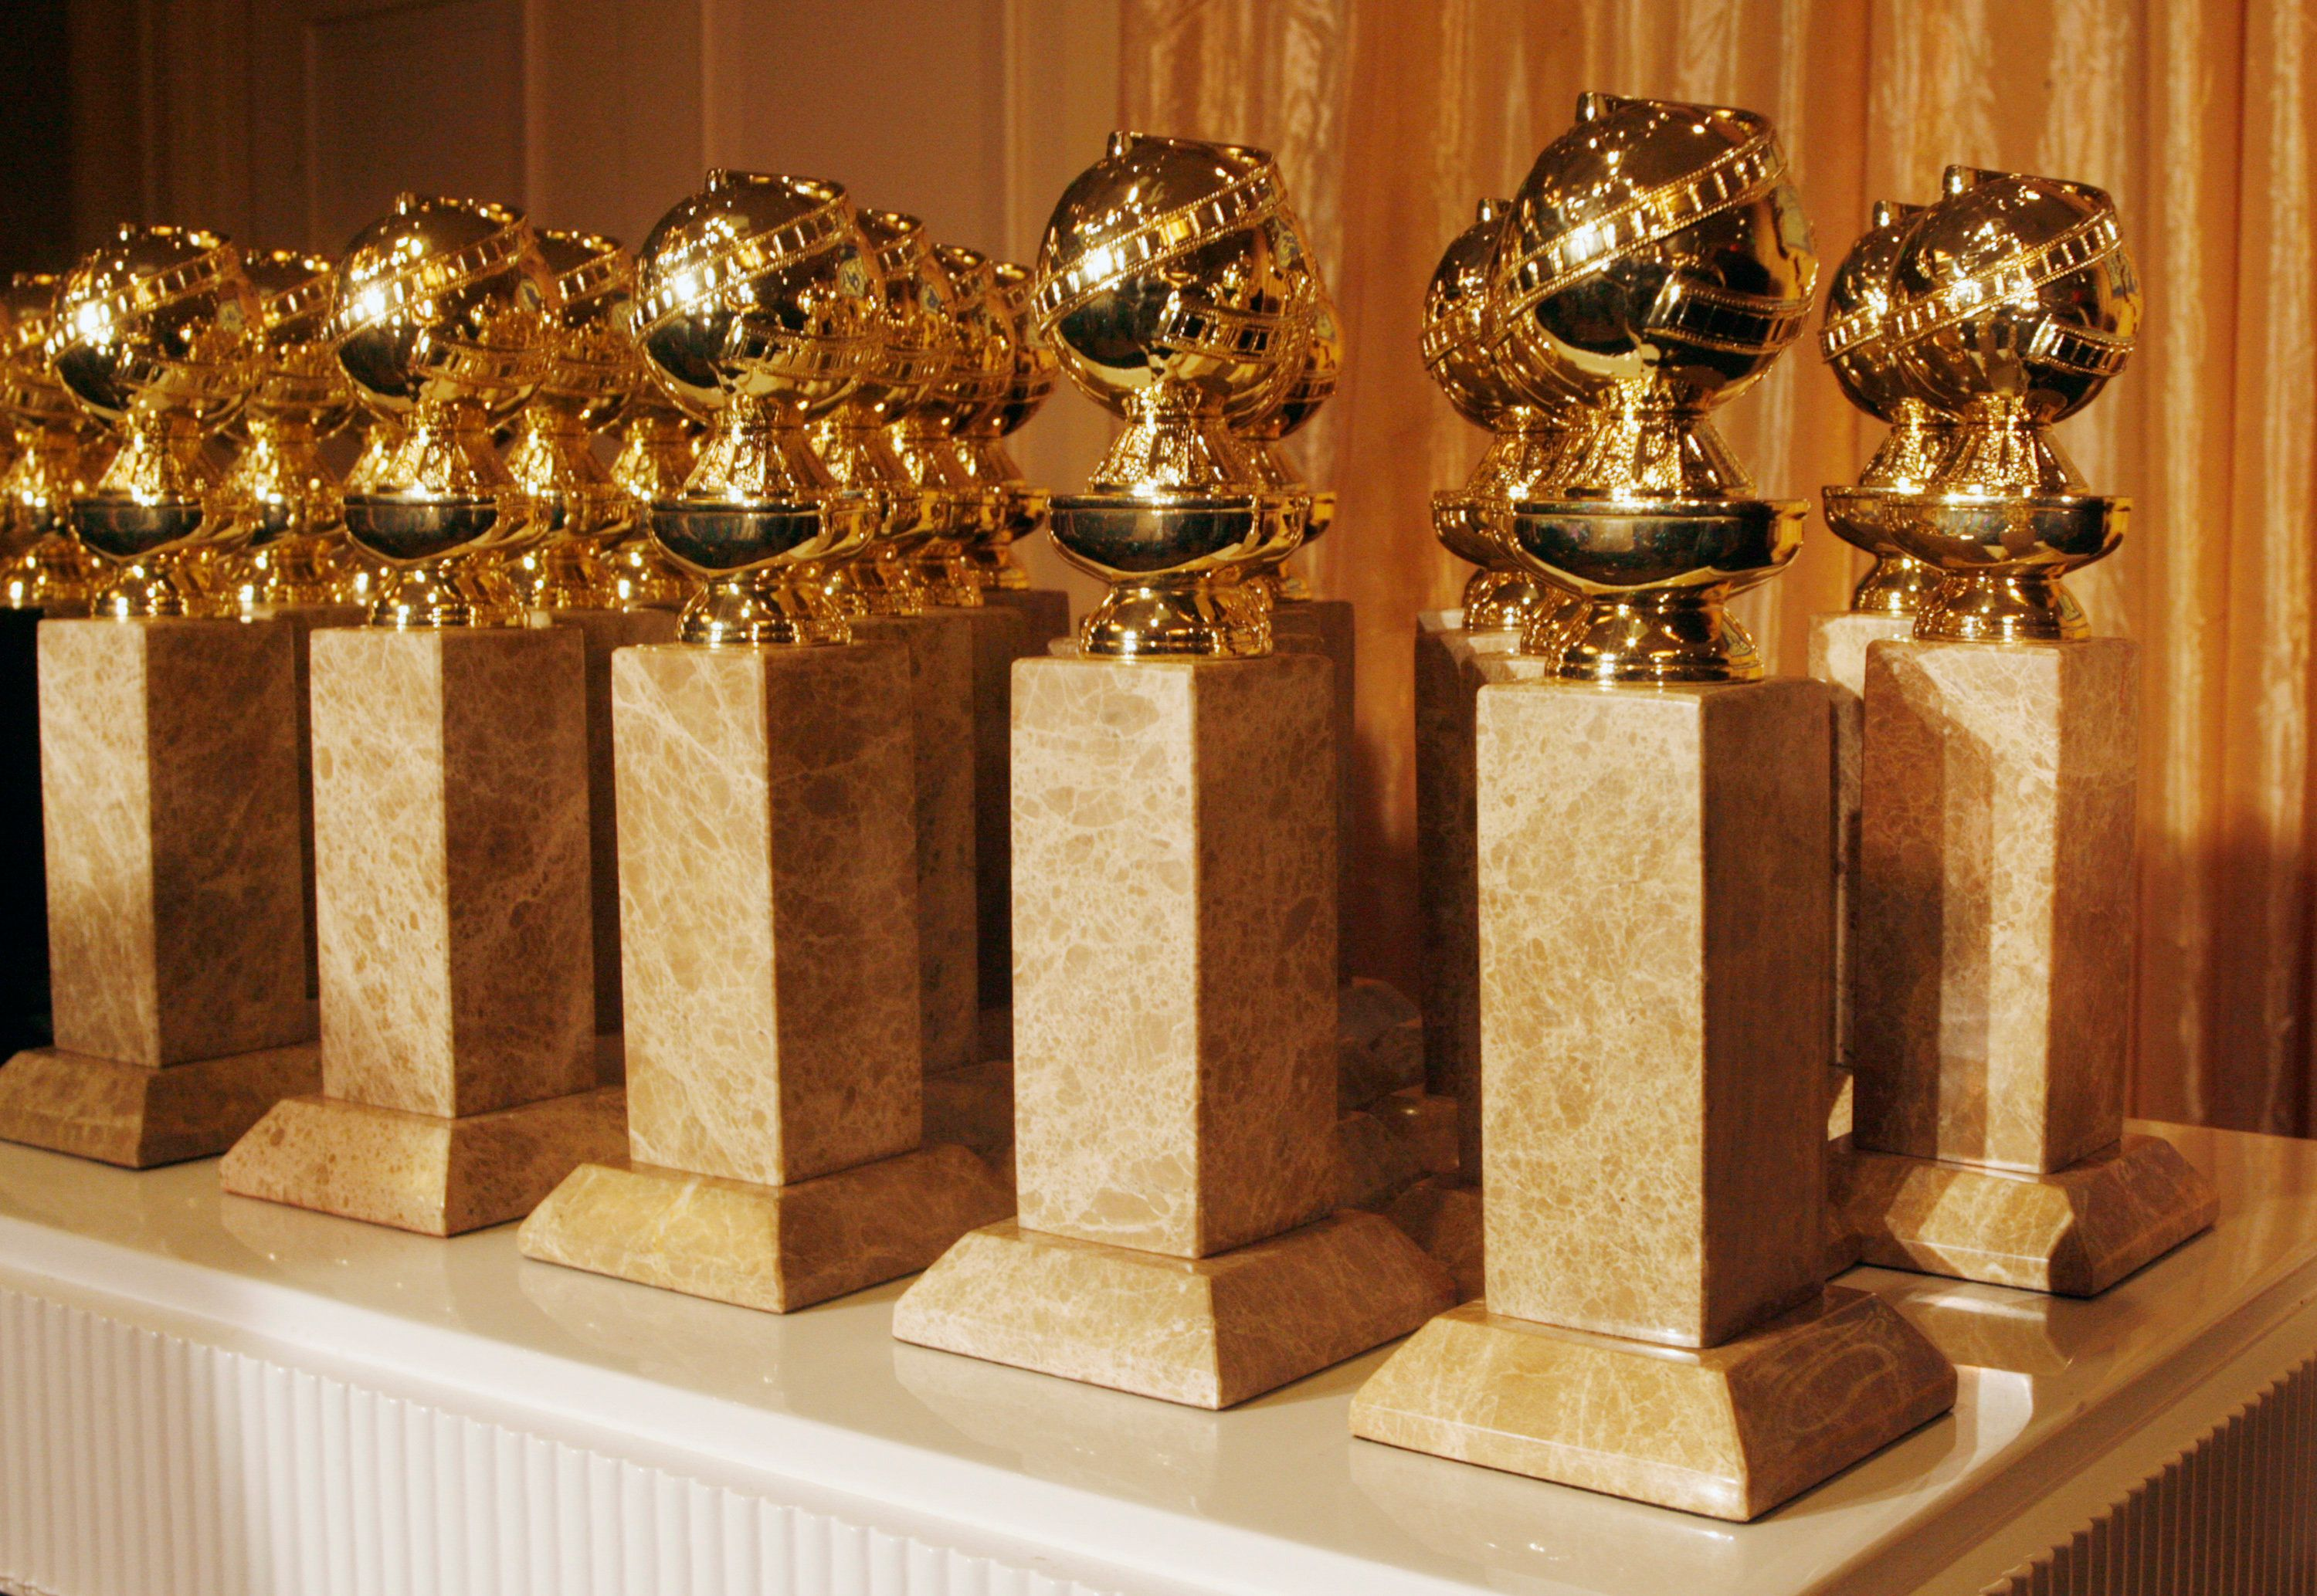 How To Follow Along With The Golden Globes Action In The UK (No, It's Not On